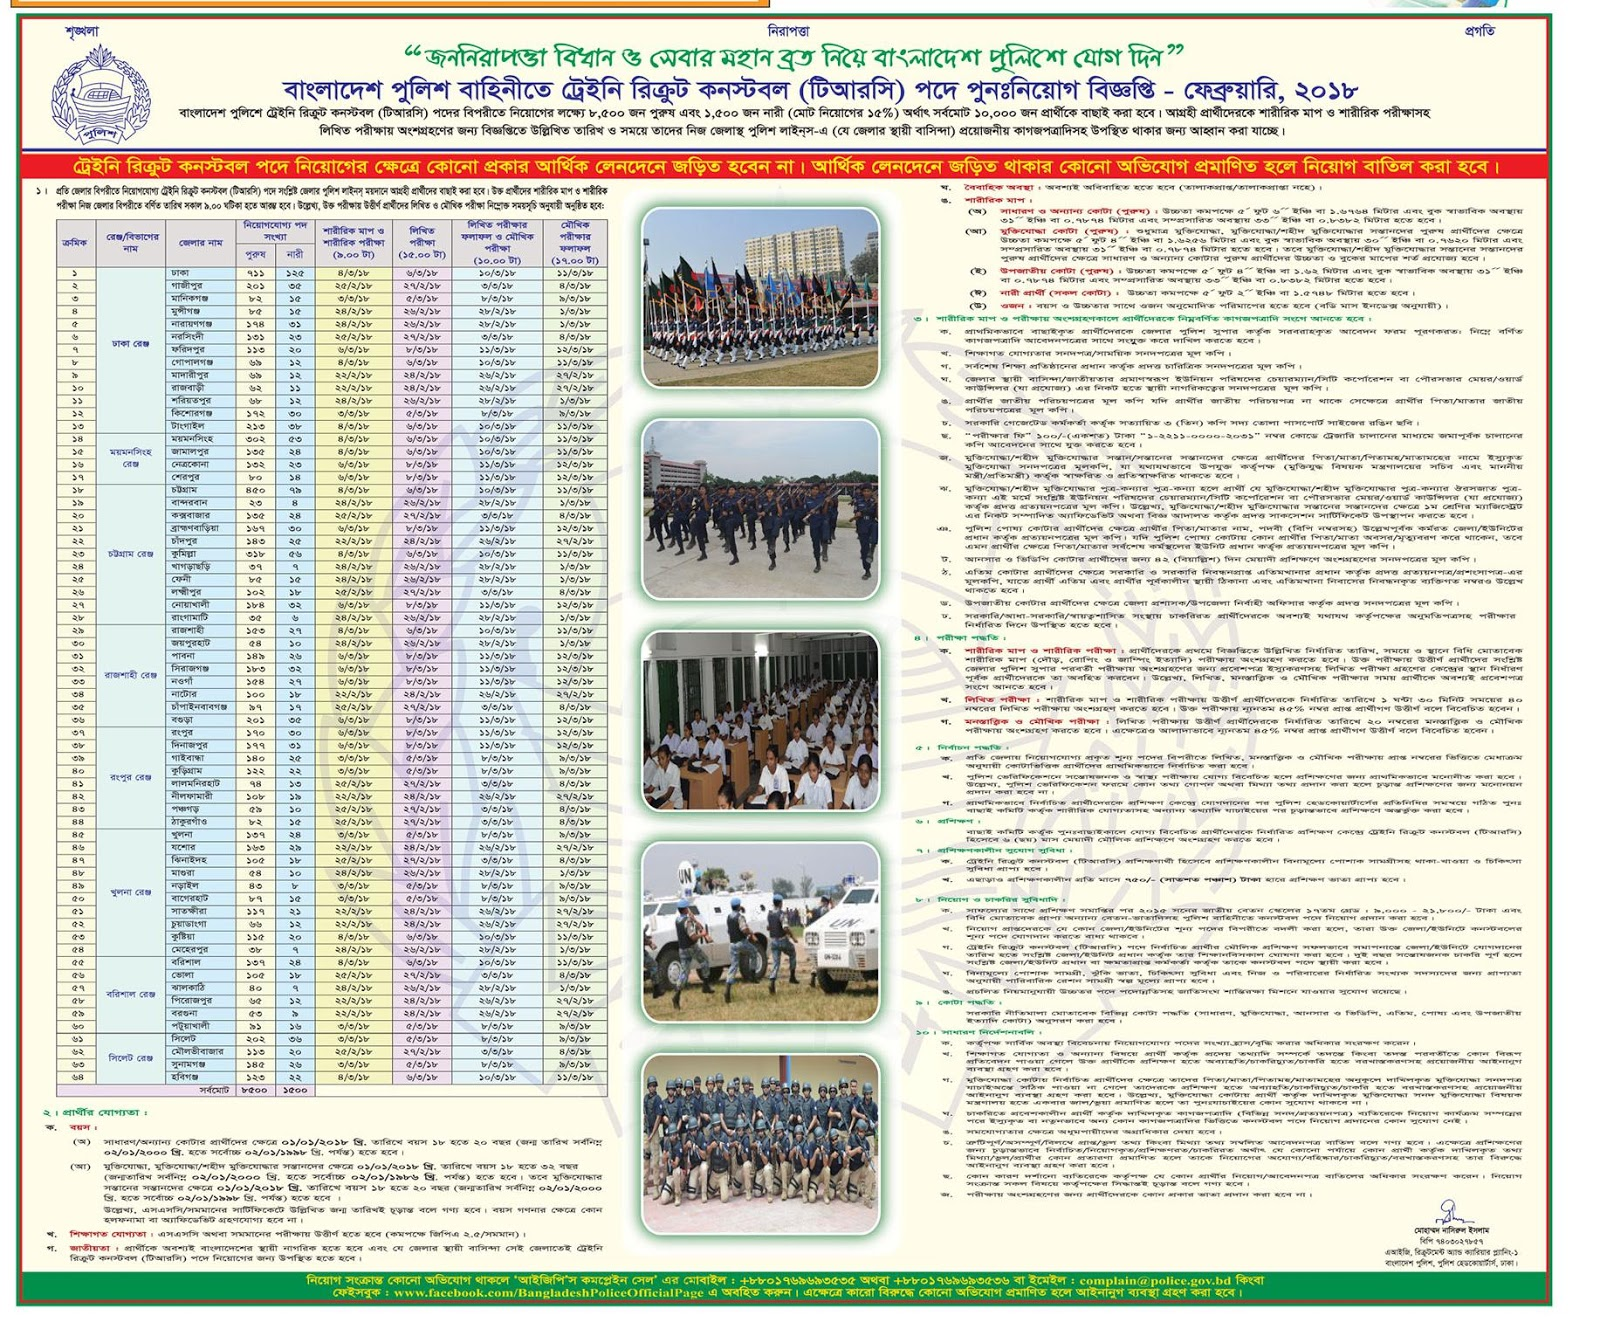 Bangladesh Police Trainee Constable (TRC) Re-Recruitment Circular 2017